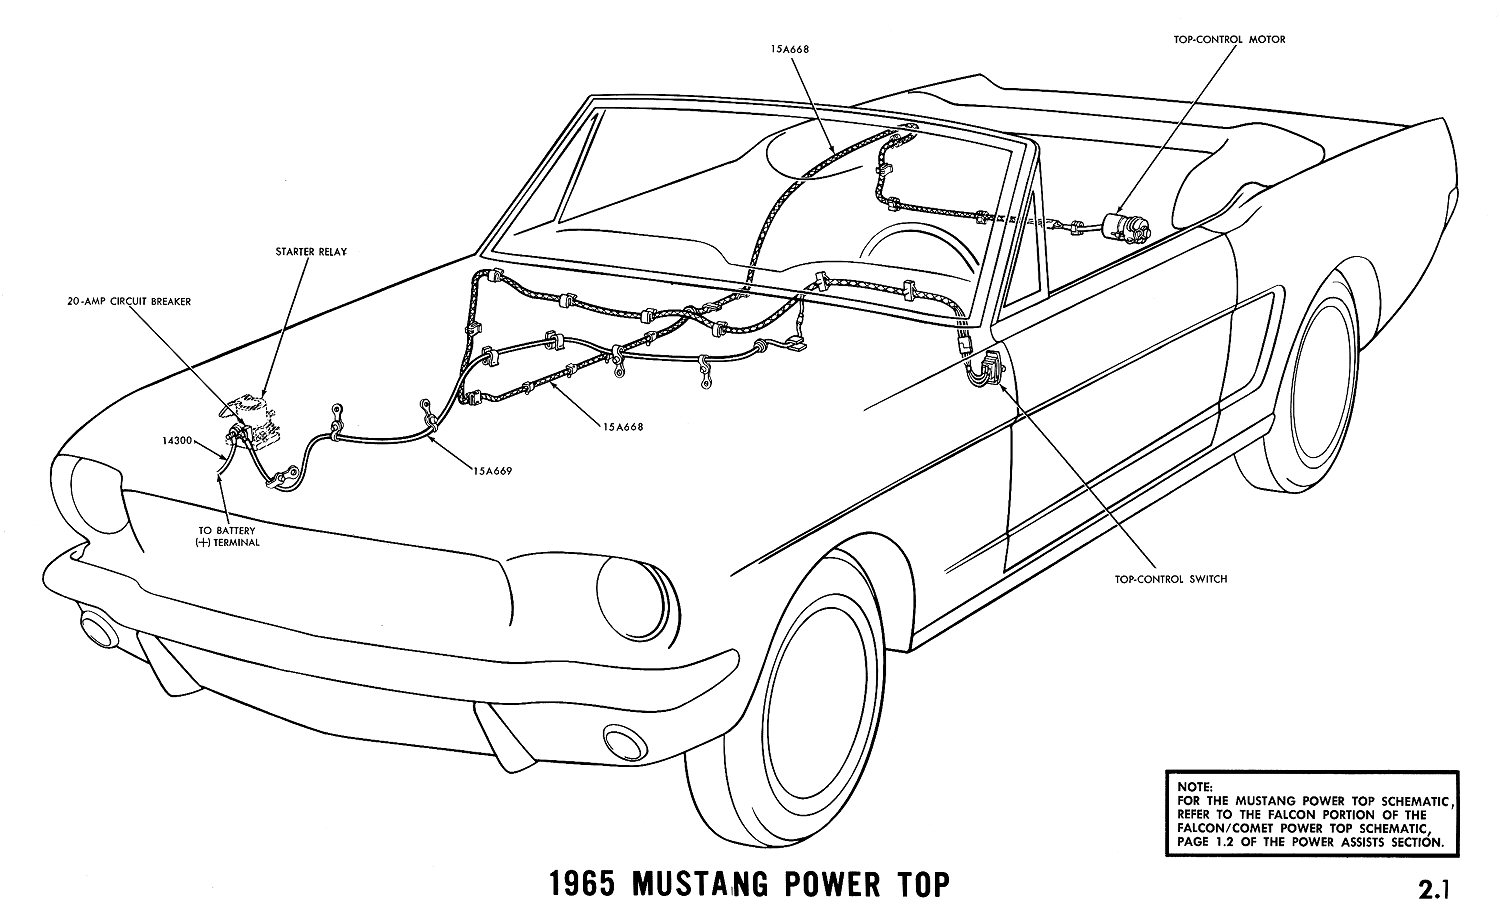 hight resolution of 1965 mustang power top pictorial or schematic